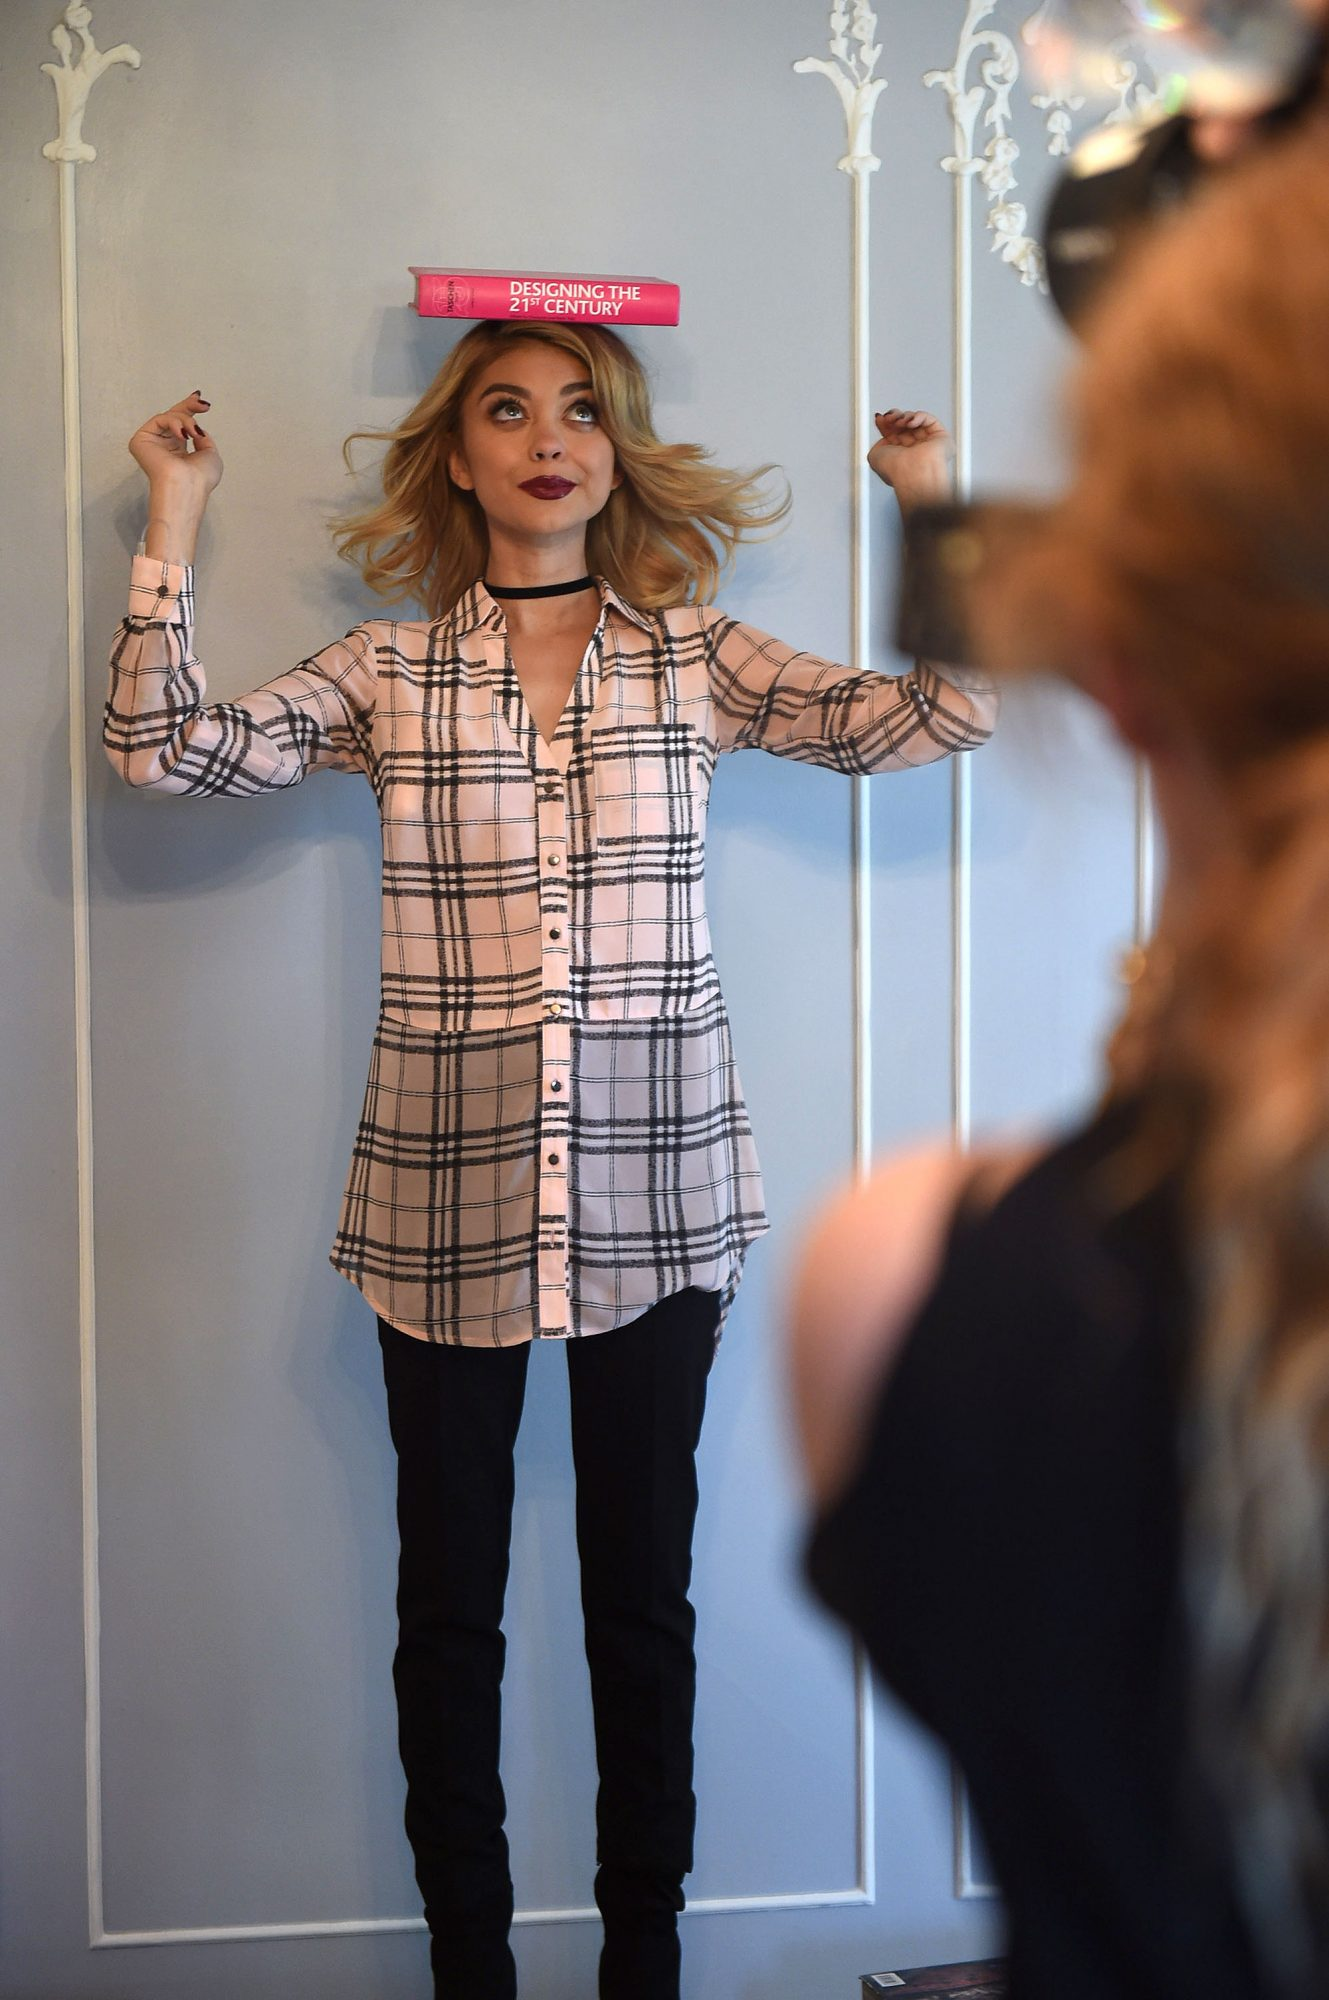 Sarah Hyland for Candie'sCredit: Courtesy Candie's